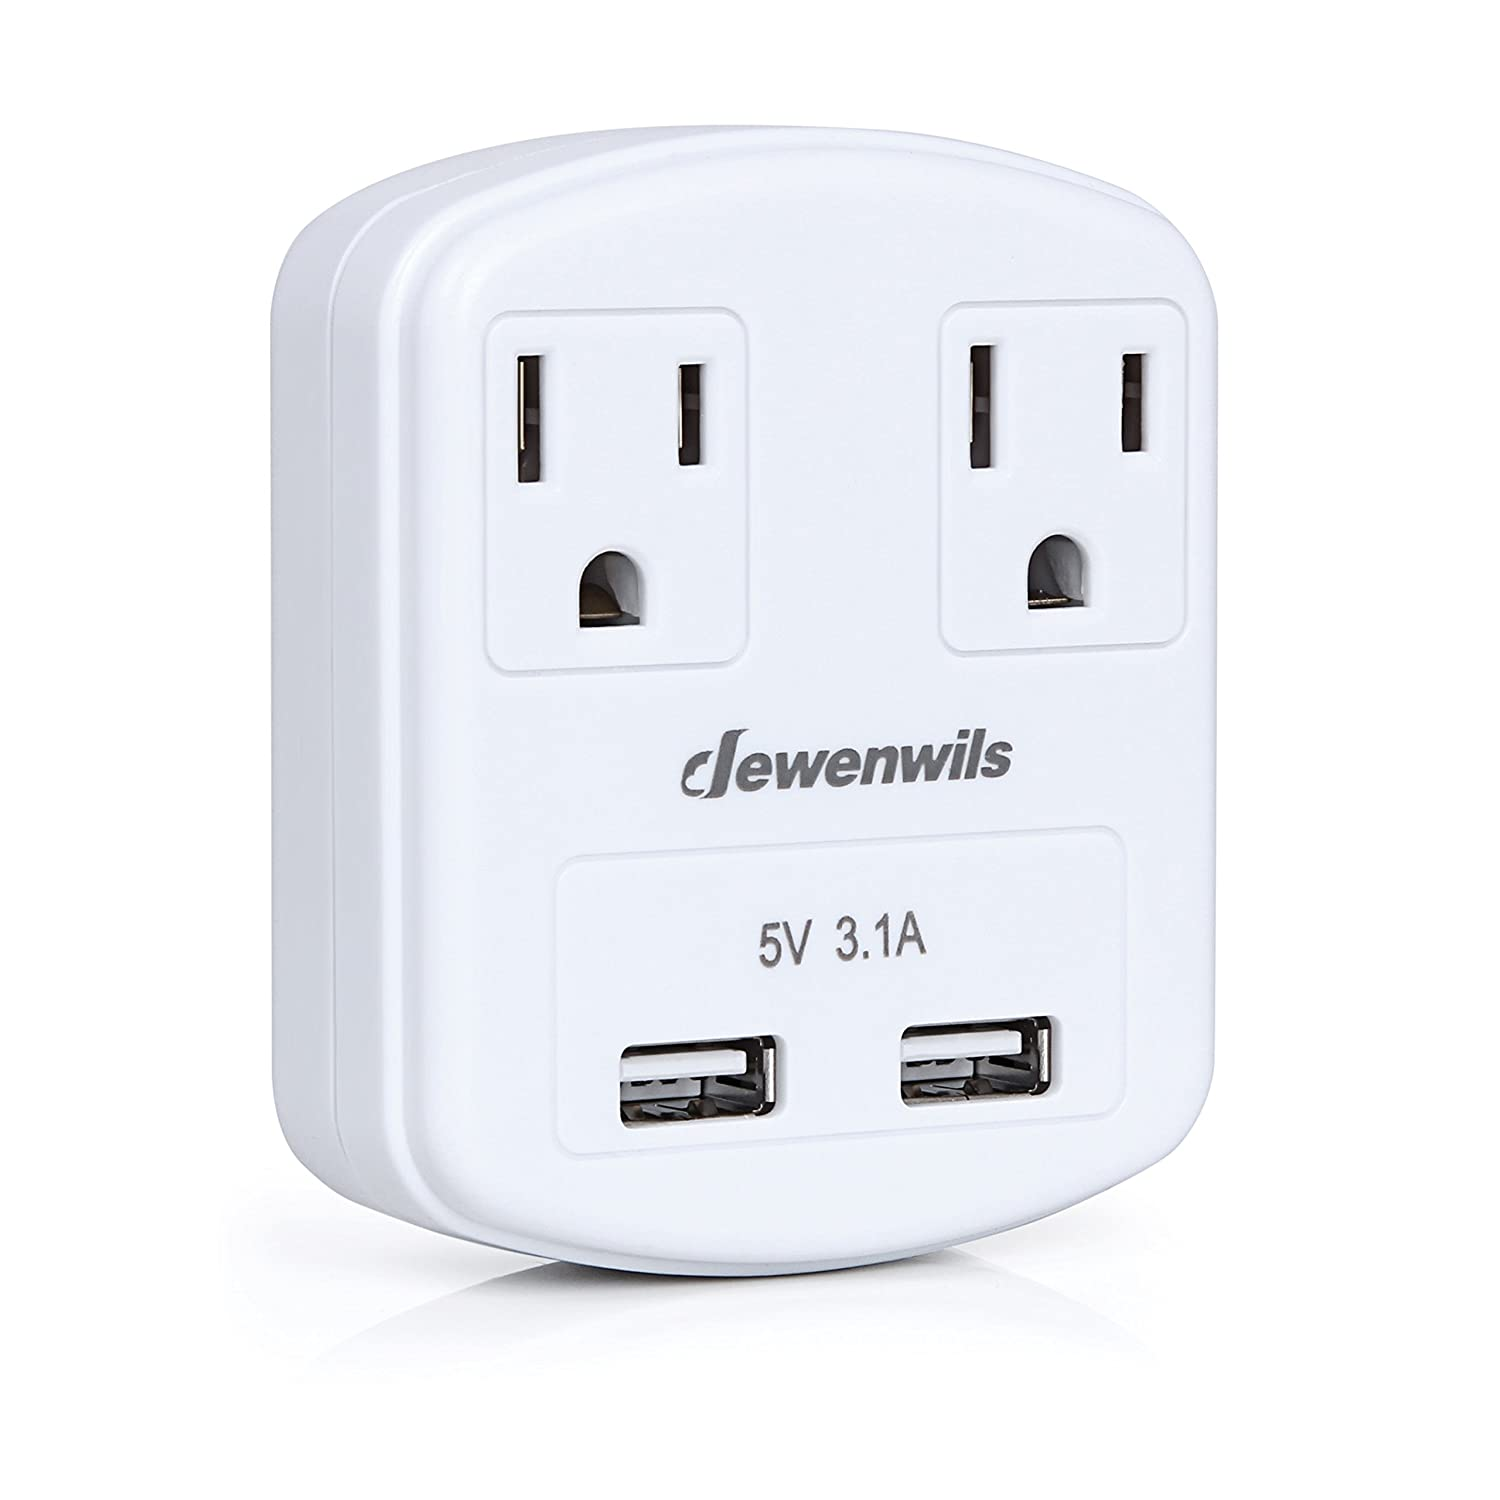 Dewenwils Multi Outlet Plug 2 AC Outlets with Dual USB Ports (2.4A/Port, 3.1A Total), Small Wall Outlet Adapter USB Charger for Travel/Home Use, ETL Listed, White CHOU202A